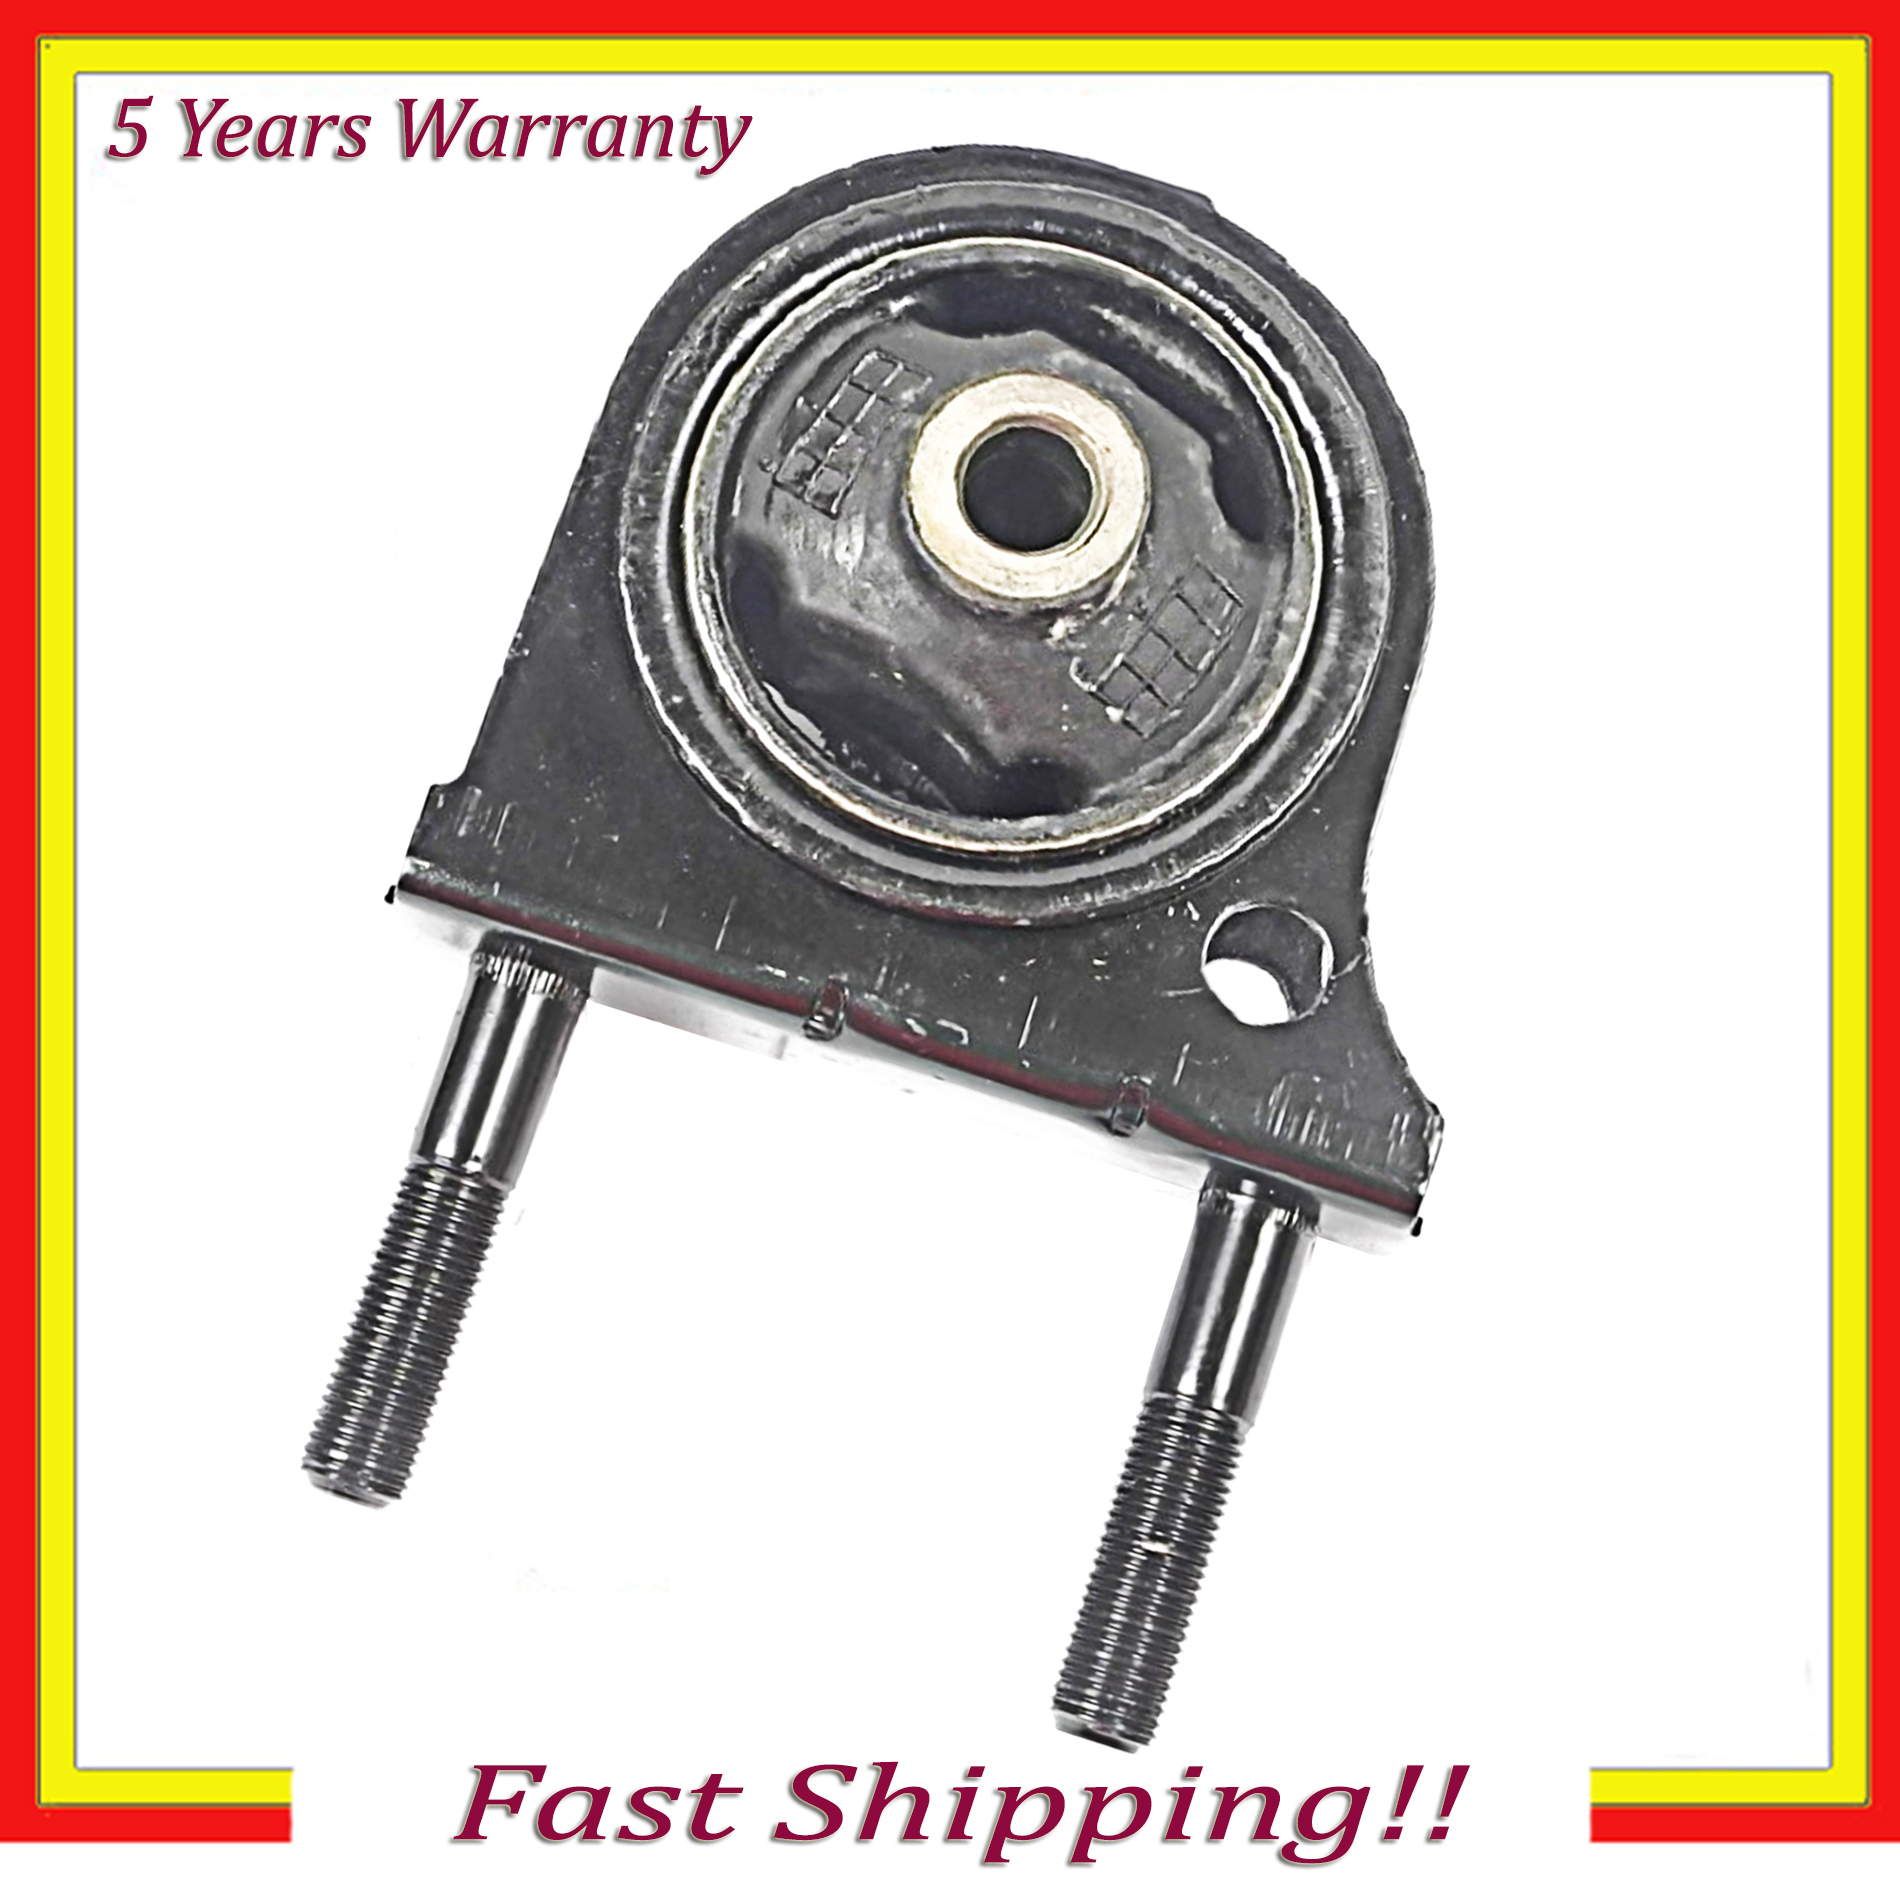 Motor Mount New Rear for Toyota RAV4 1996-2000